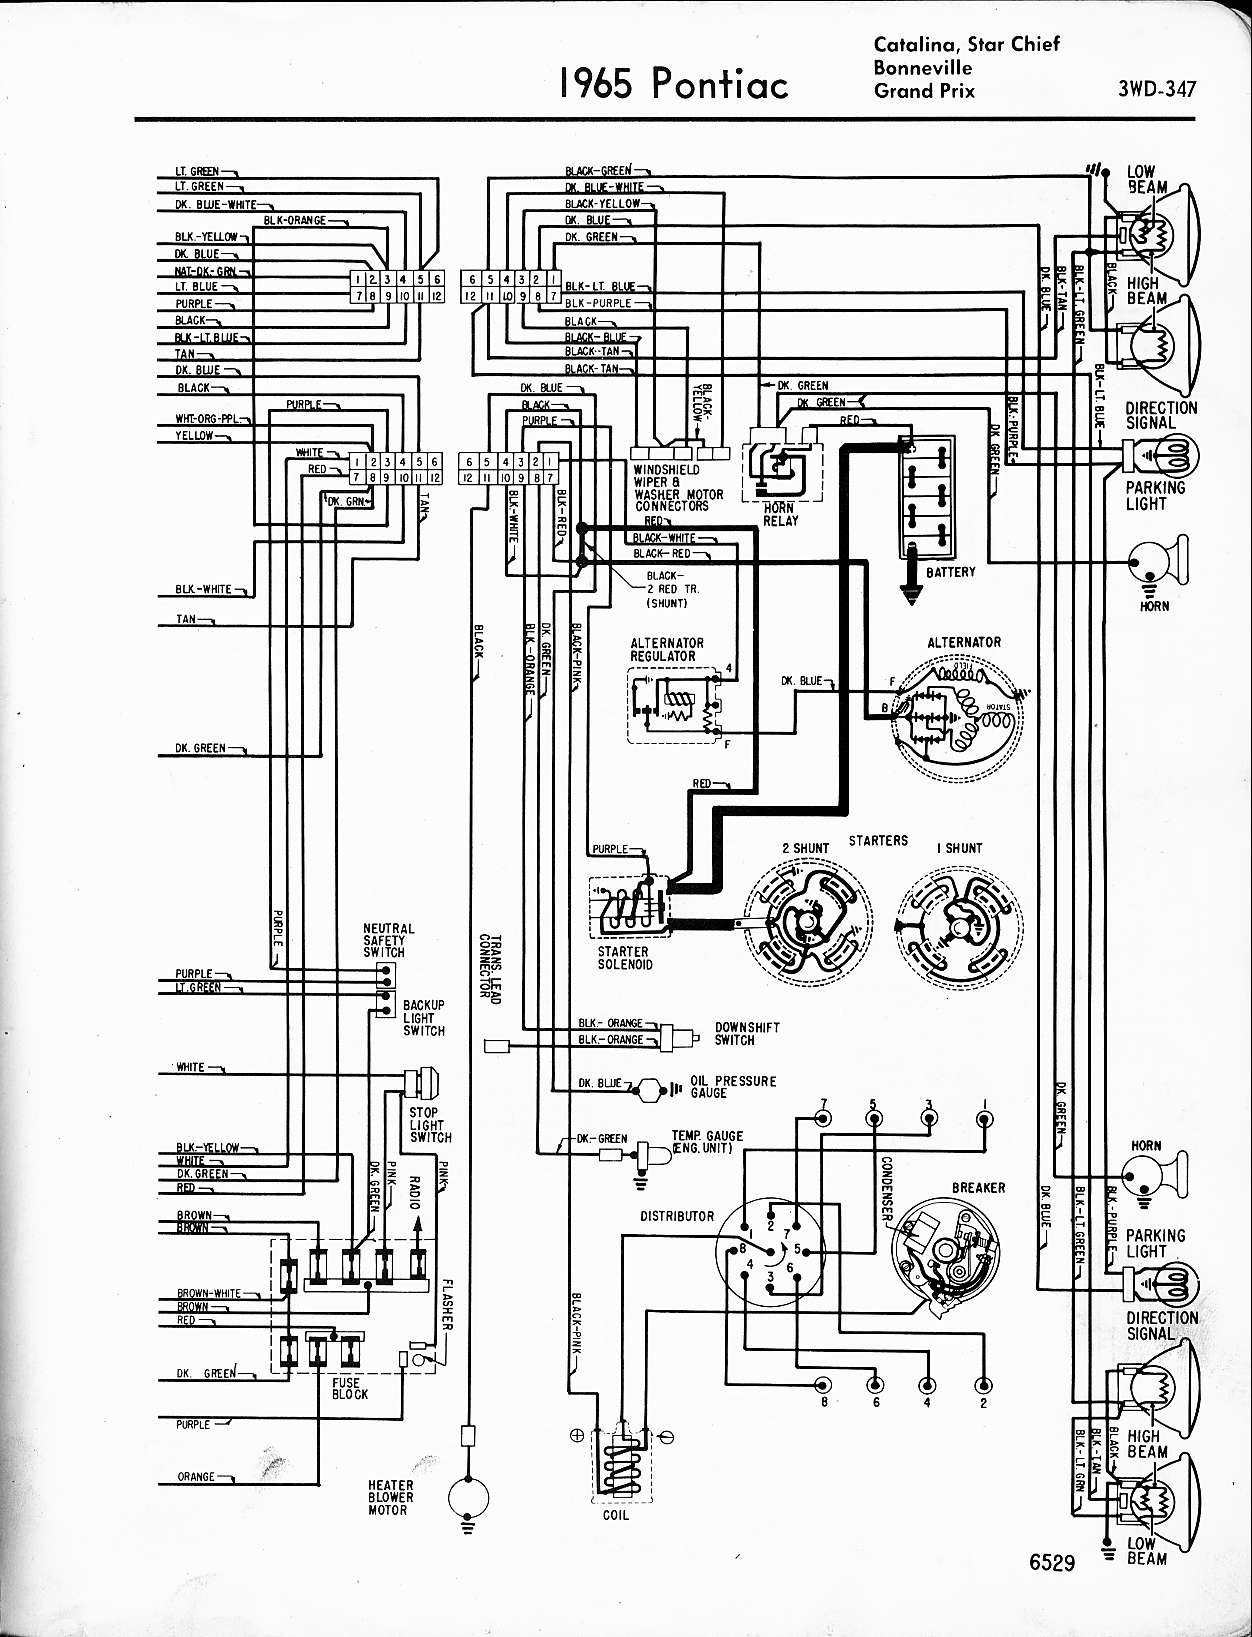 Awe Inspiring Pontiac Vacuum Diagram Wiring Library Wiring Digital Resources Sapebecompassionincorg